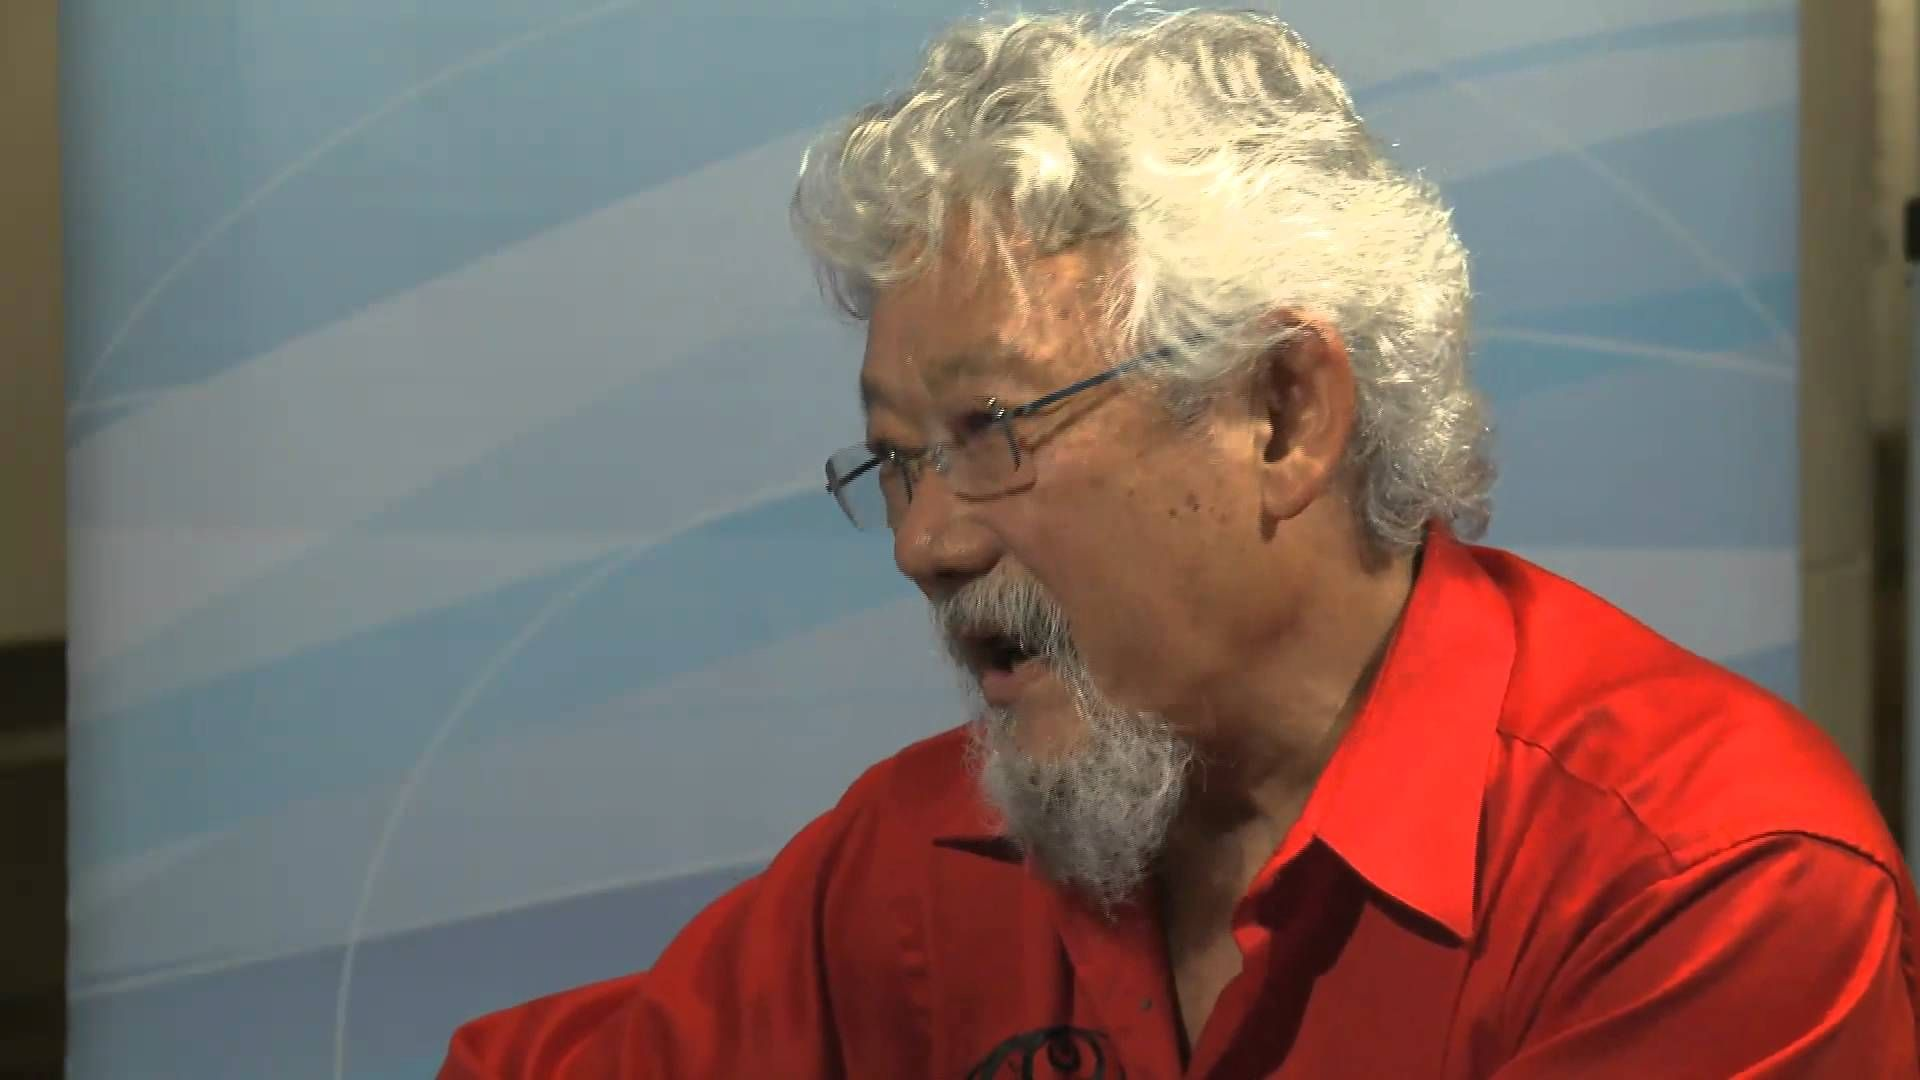 David Suzuki is a famous Canadian environmentalist. He is